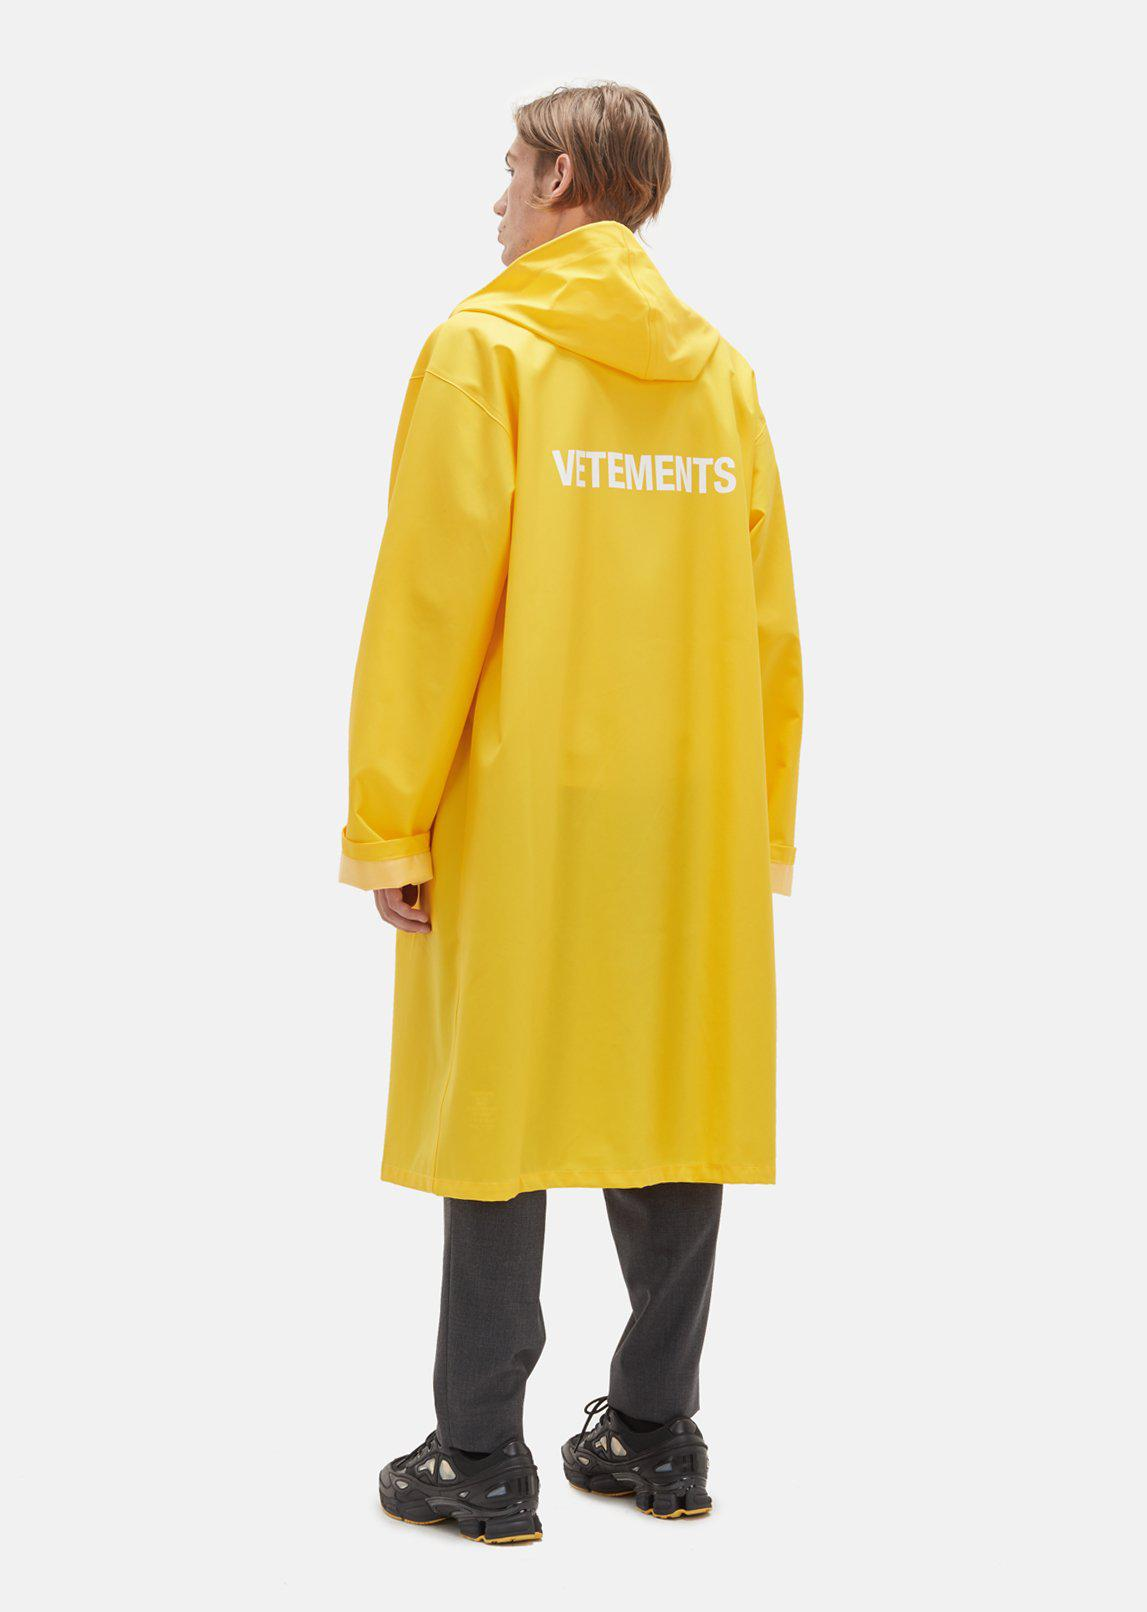 Fred Martin Ford >> Vetements Raincoat in Yellow - Lyst